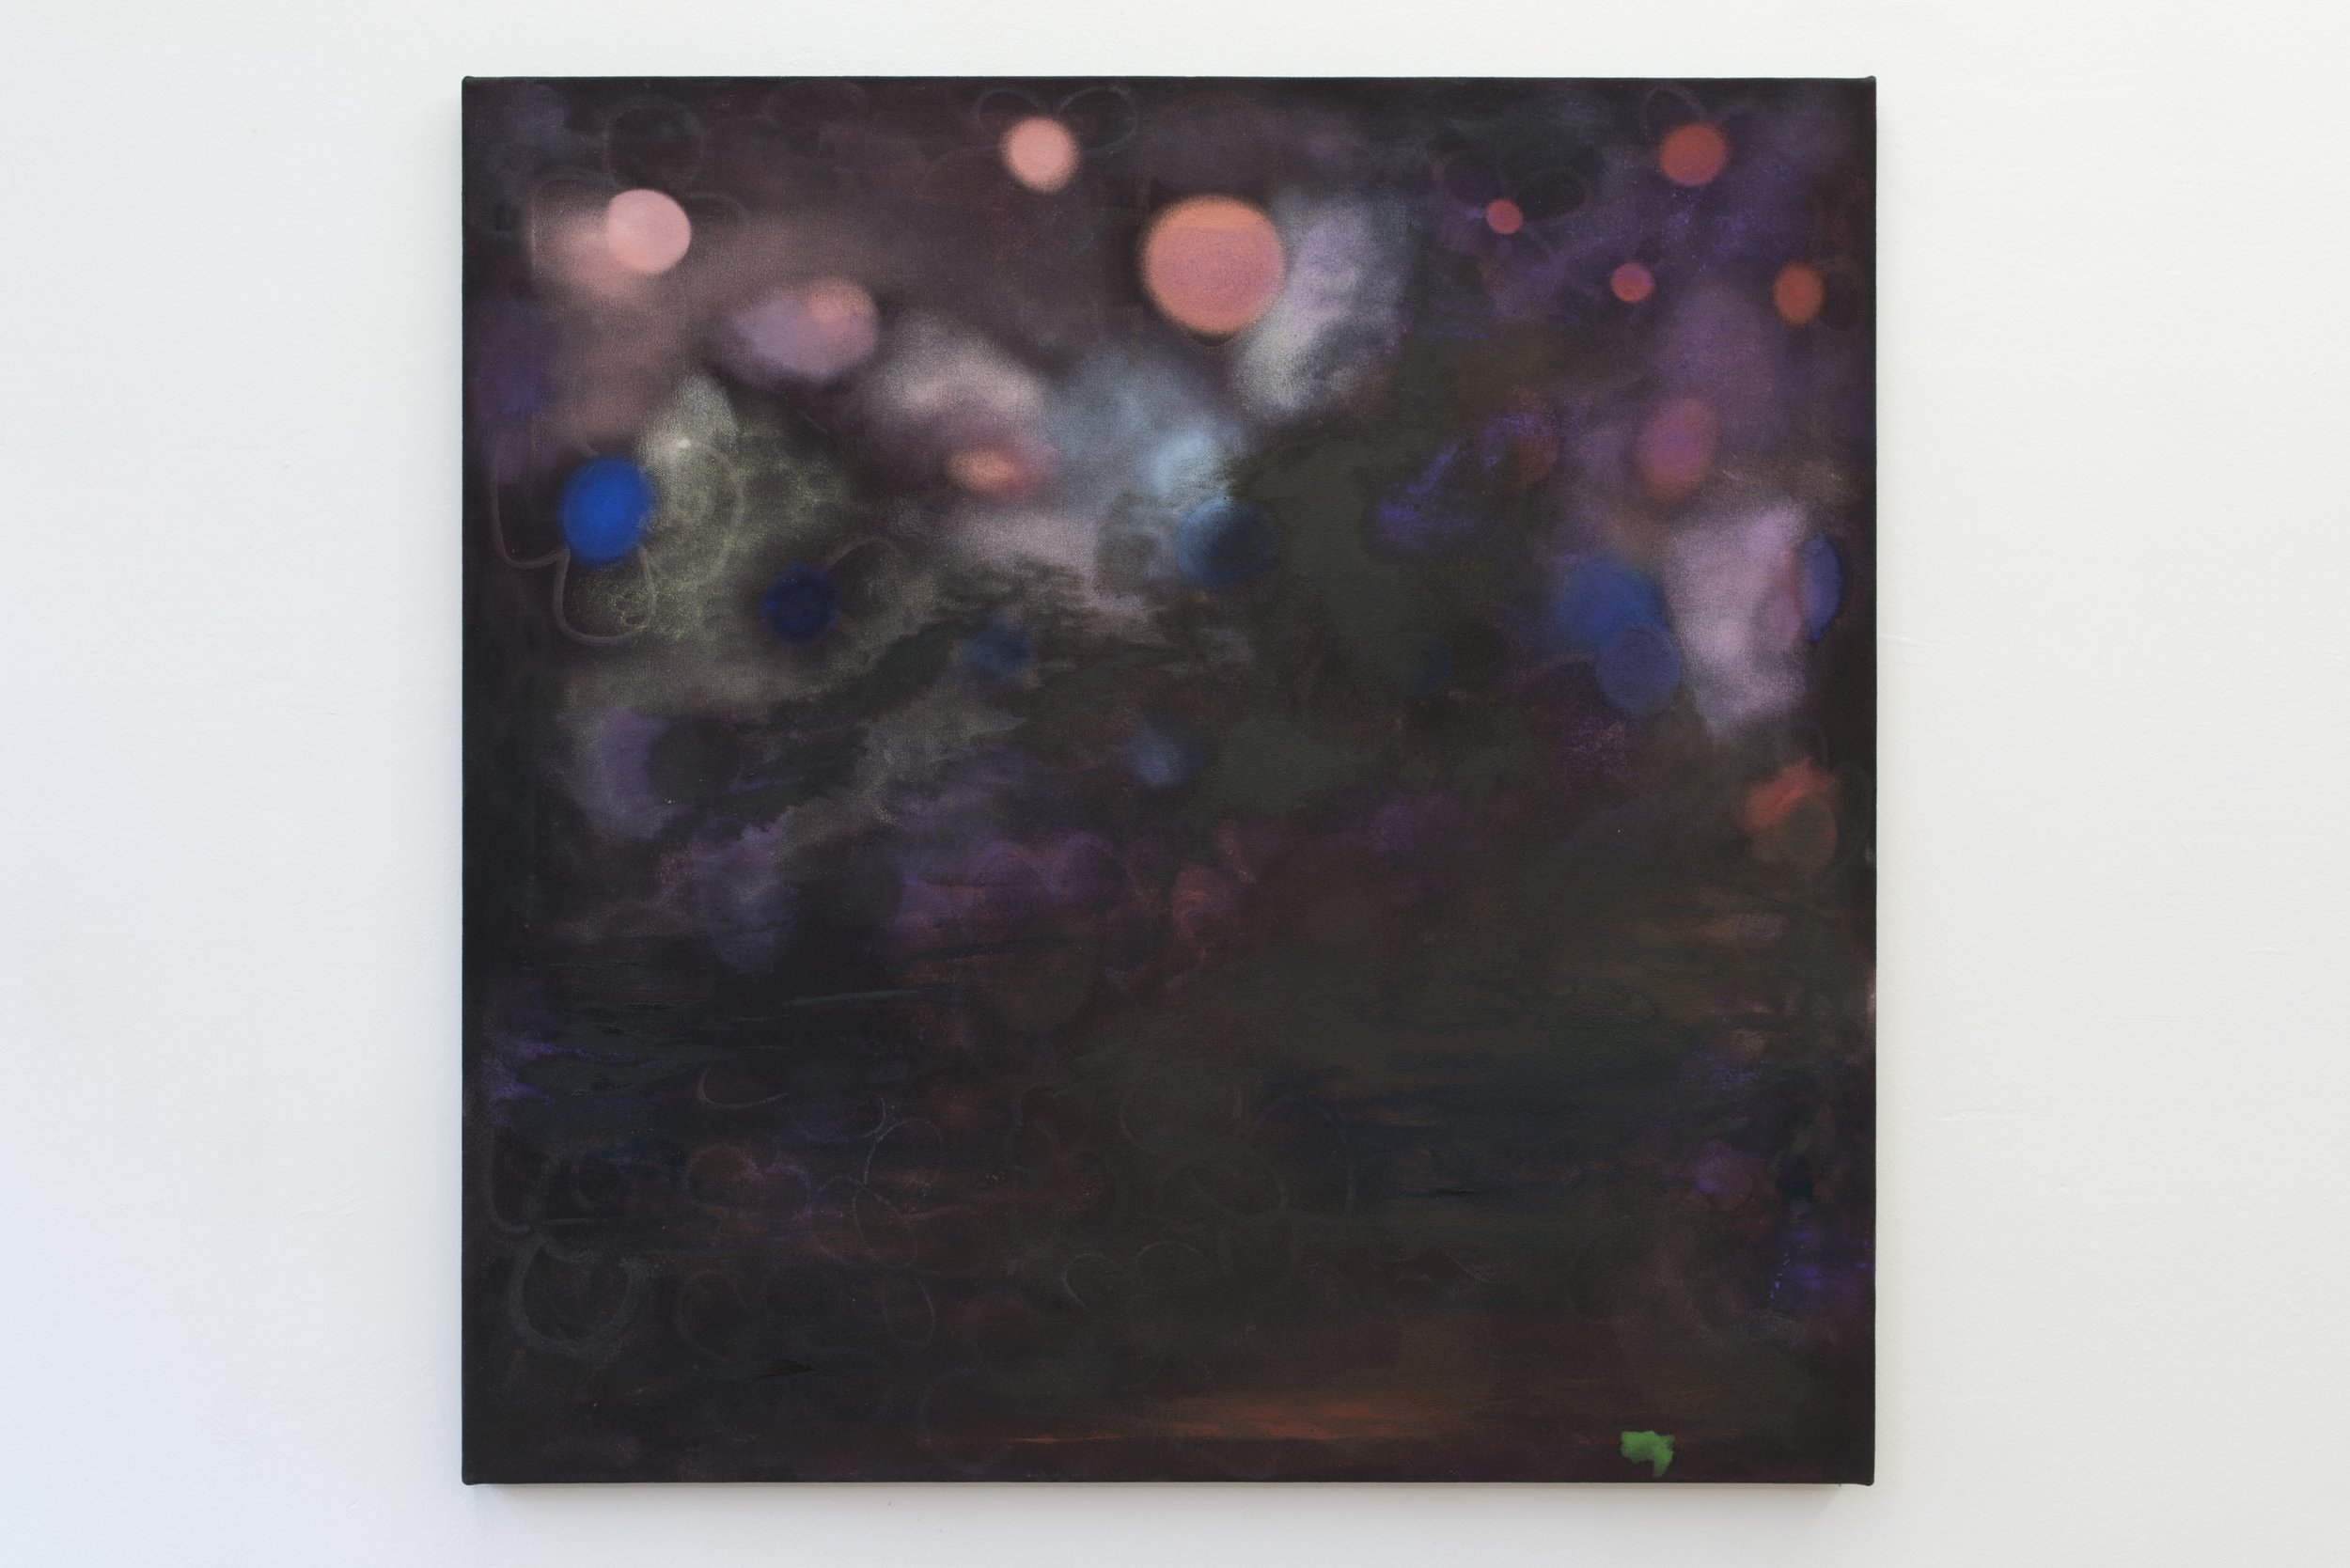 Kate Spencer Stewart,  null , 2018, oil on canvas, 32 x 32 inches (81.28 x 81.28 cm)